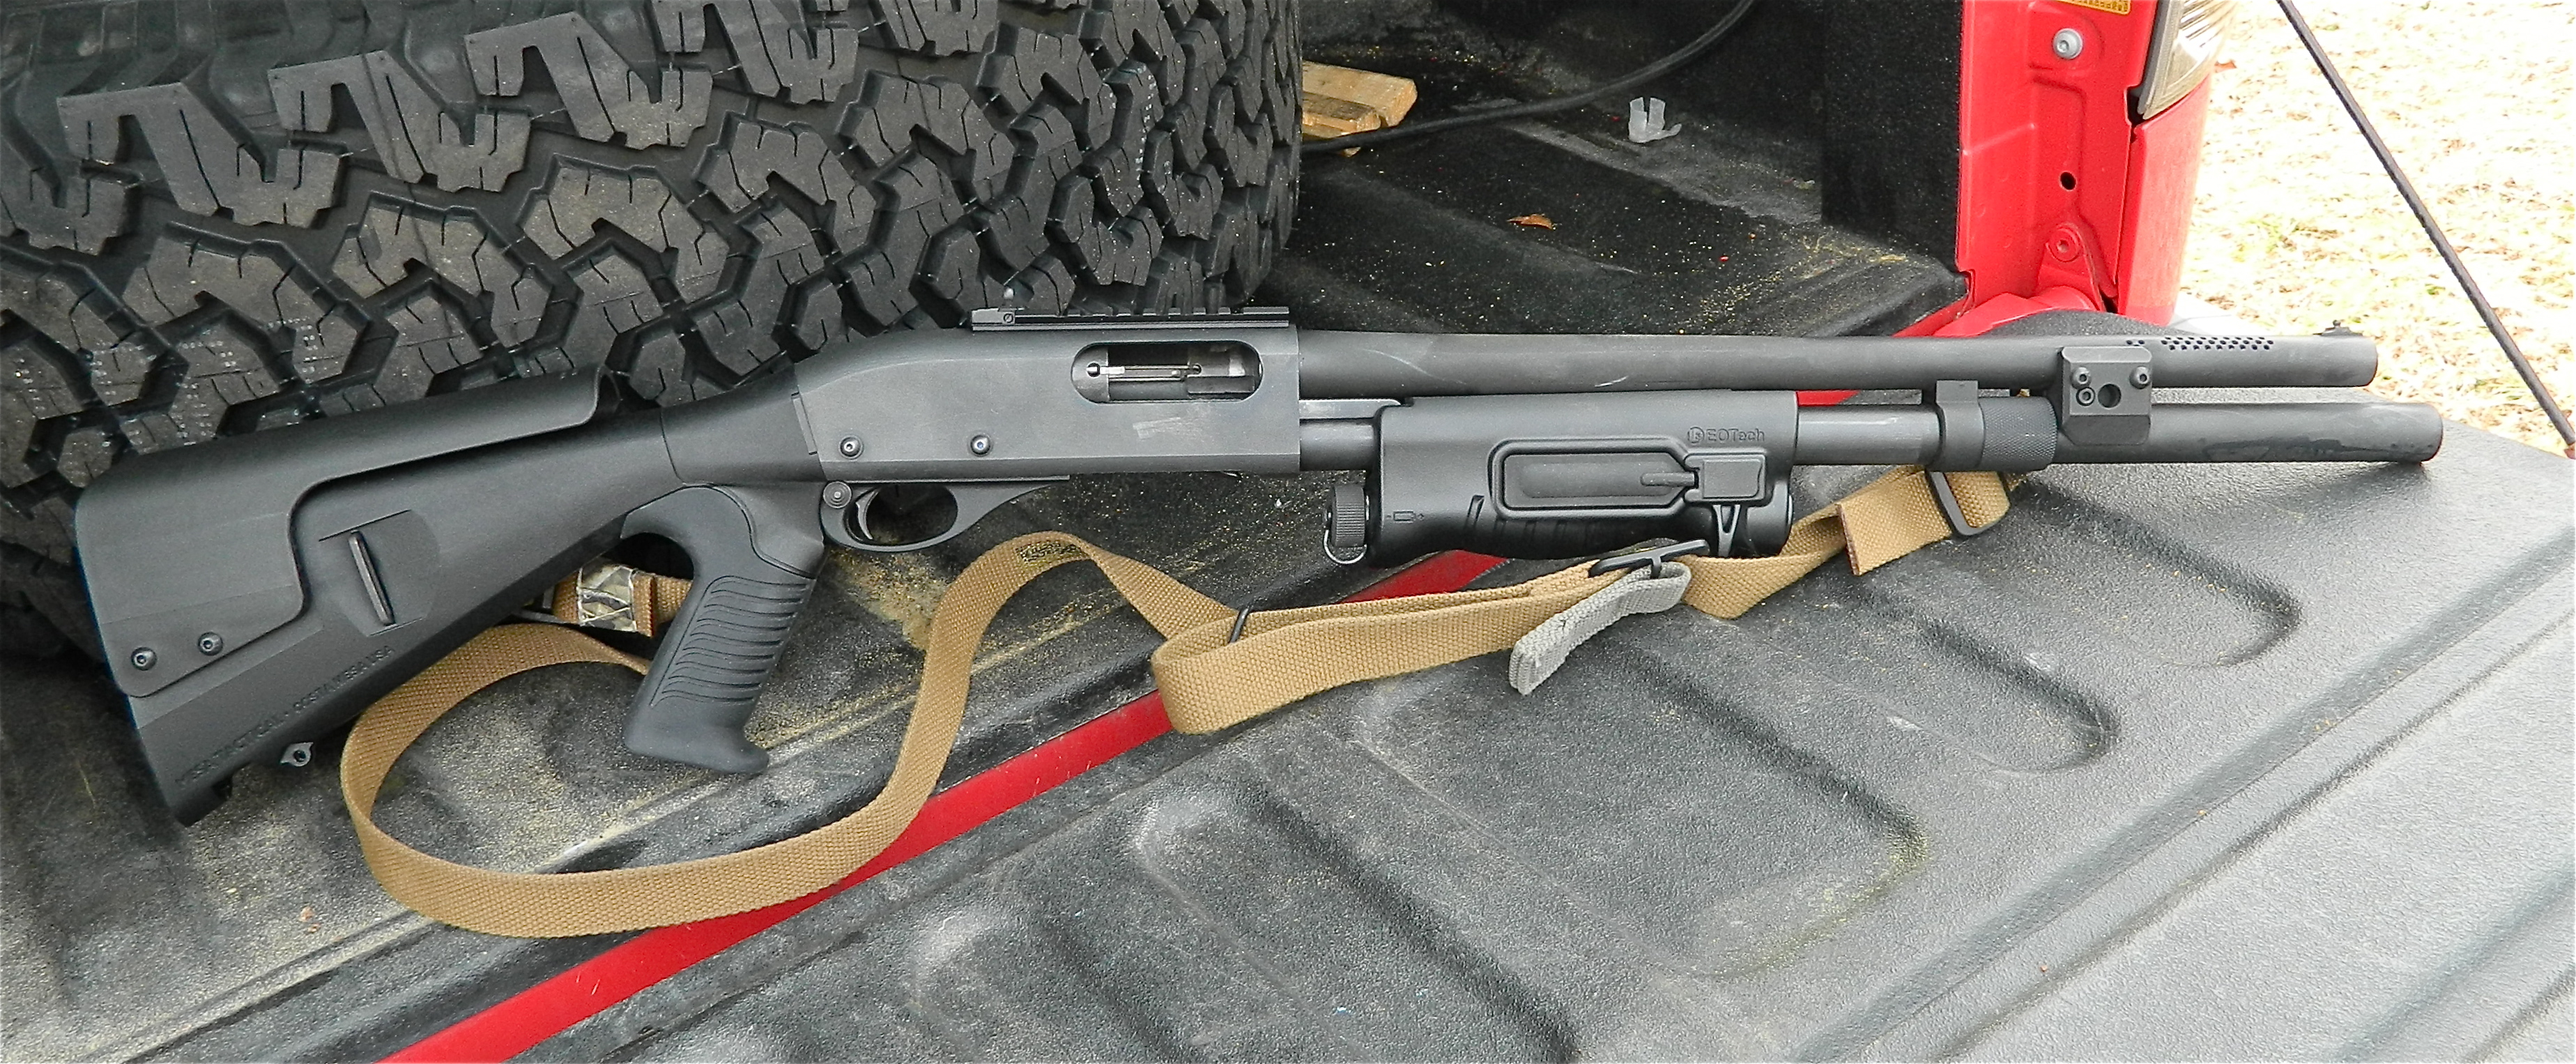 Benelli m2 tactical reviews - Benelli M2 Tactical Reviews 43